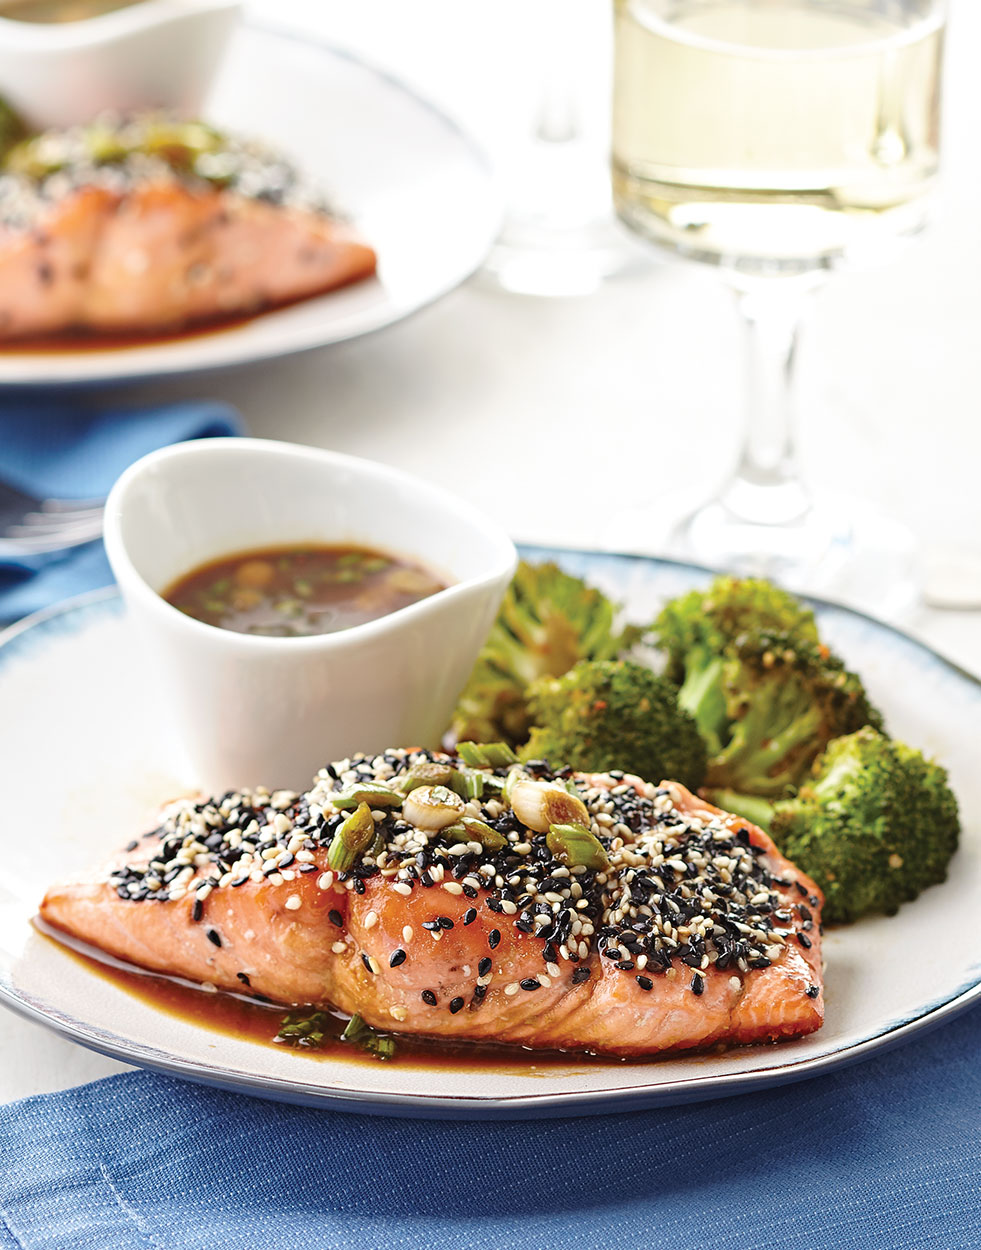 Sesame-Crusted Salmon with wasabi dipping sauce